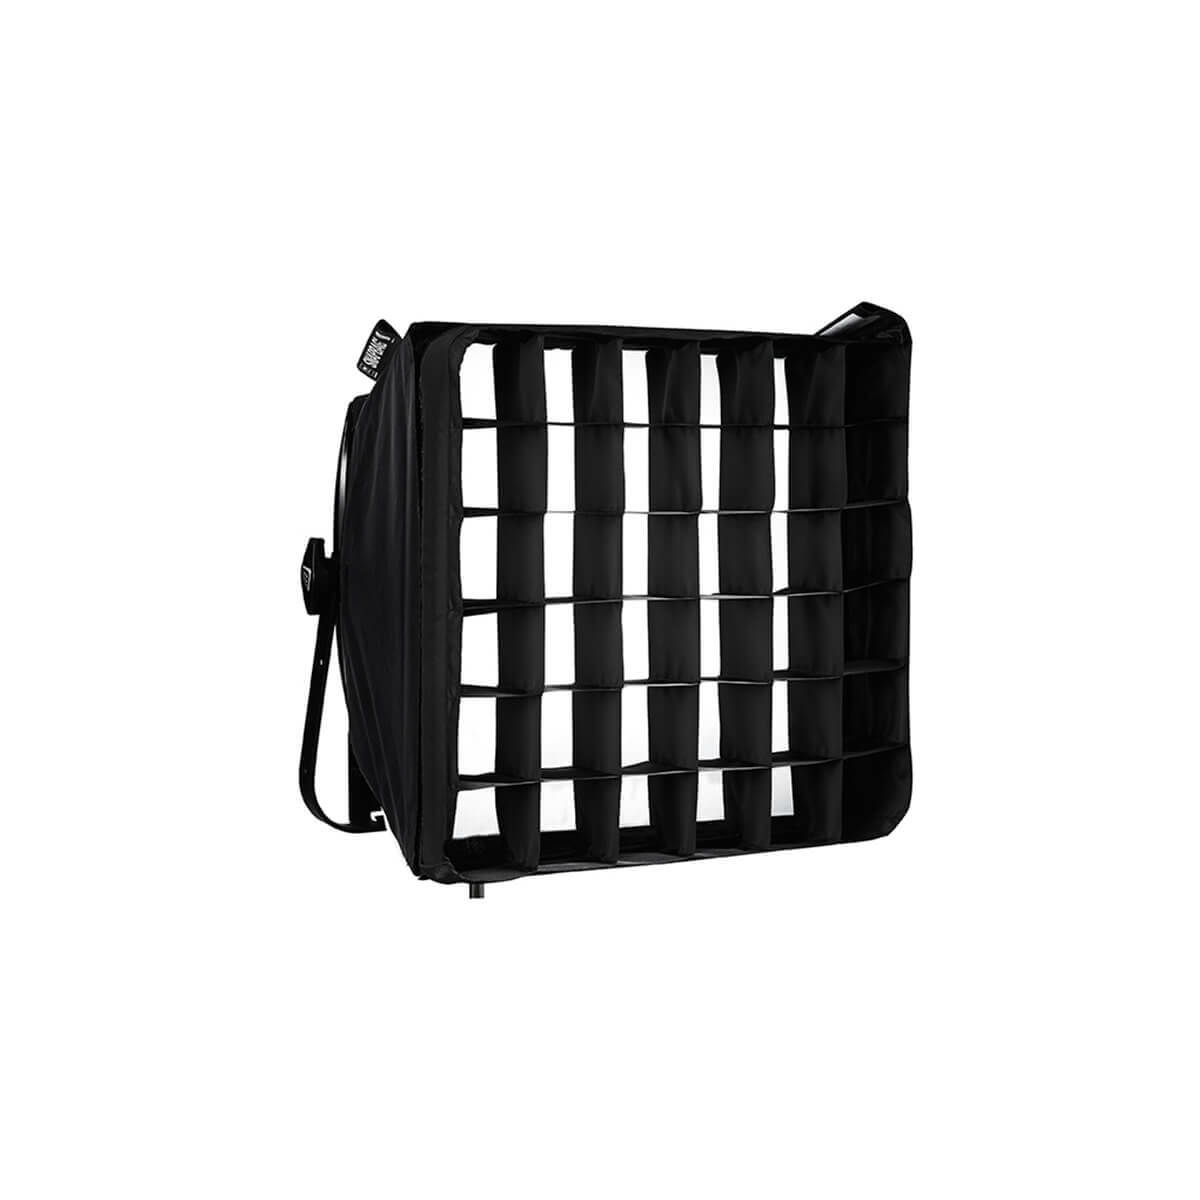 40° Snapgrid Eggcrate for Snapbag Softbox for Astra 1x1 and Hilio D12/T12 - Usado